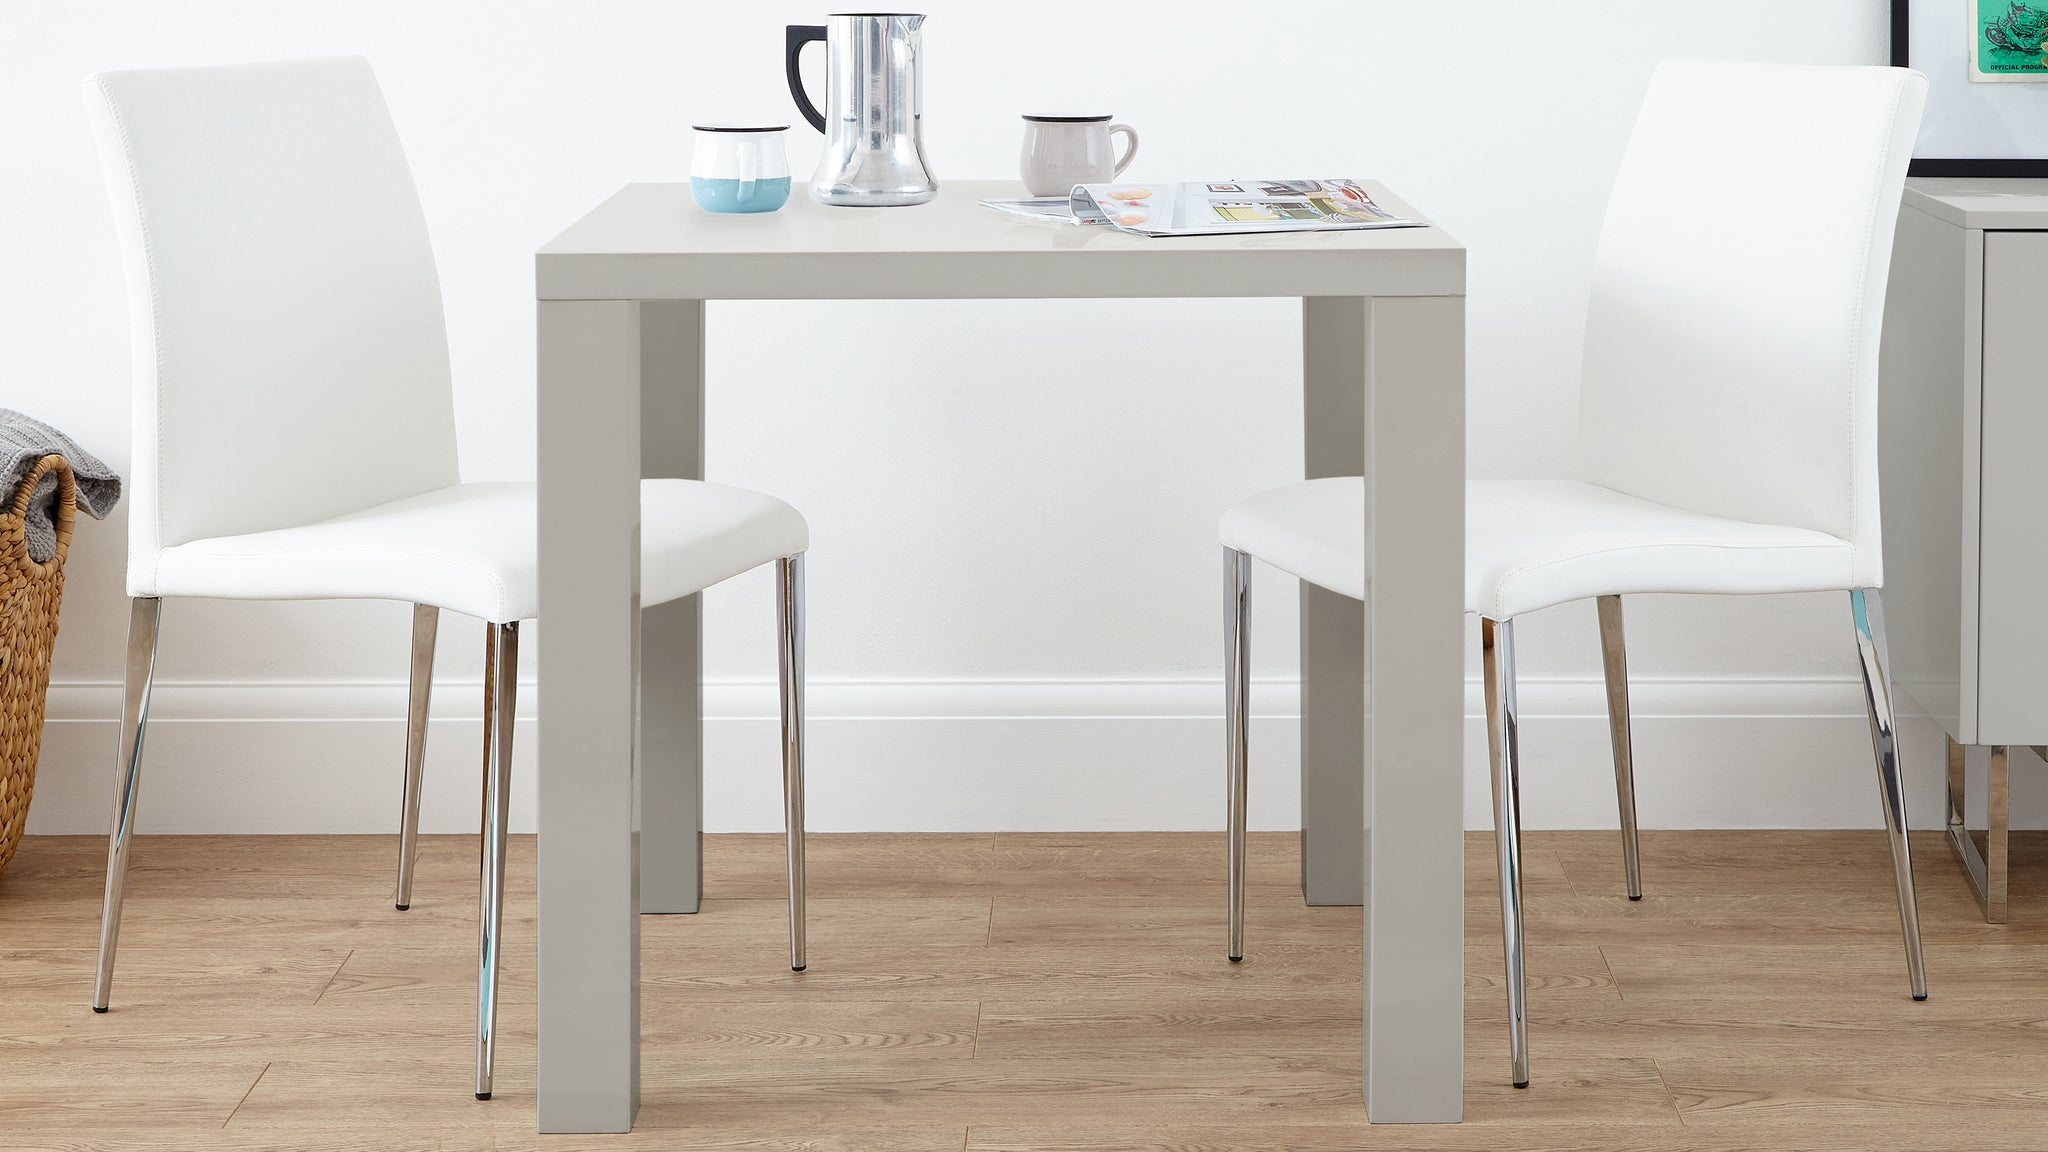 Fern Grey Gloss and Elise Kitchen Dining Set